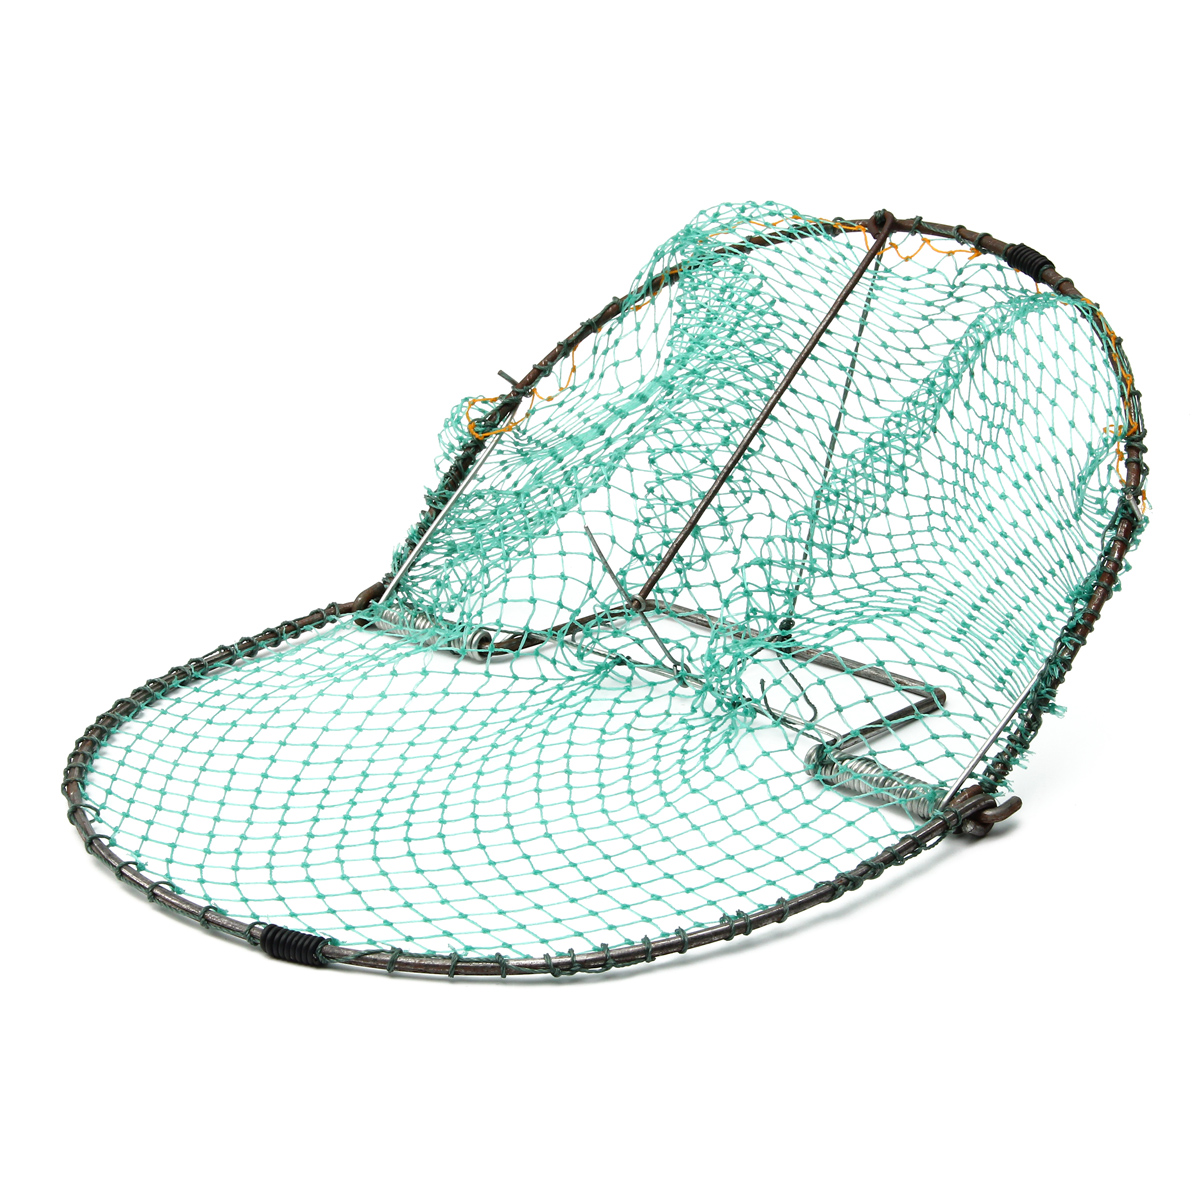 12inch Bird Net Effective Humane Live Trap Hunting Sensitive Quail Humane Trapping Hunting 300mm Garden Supplies Pest Control